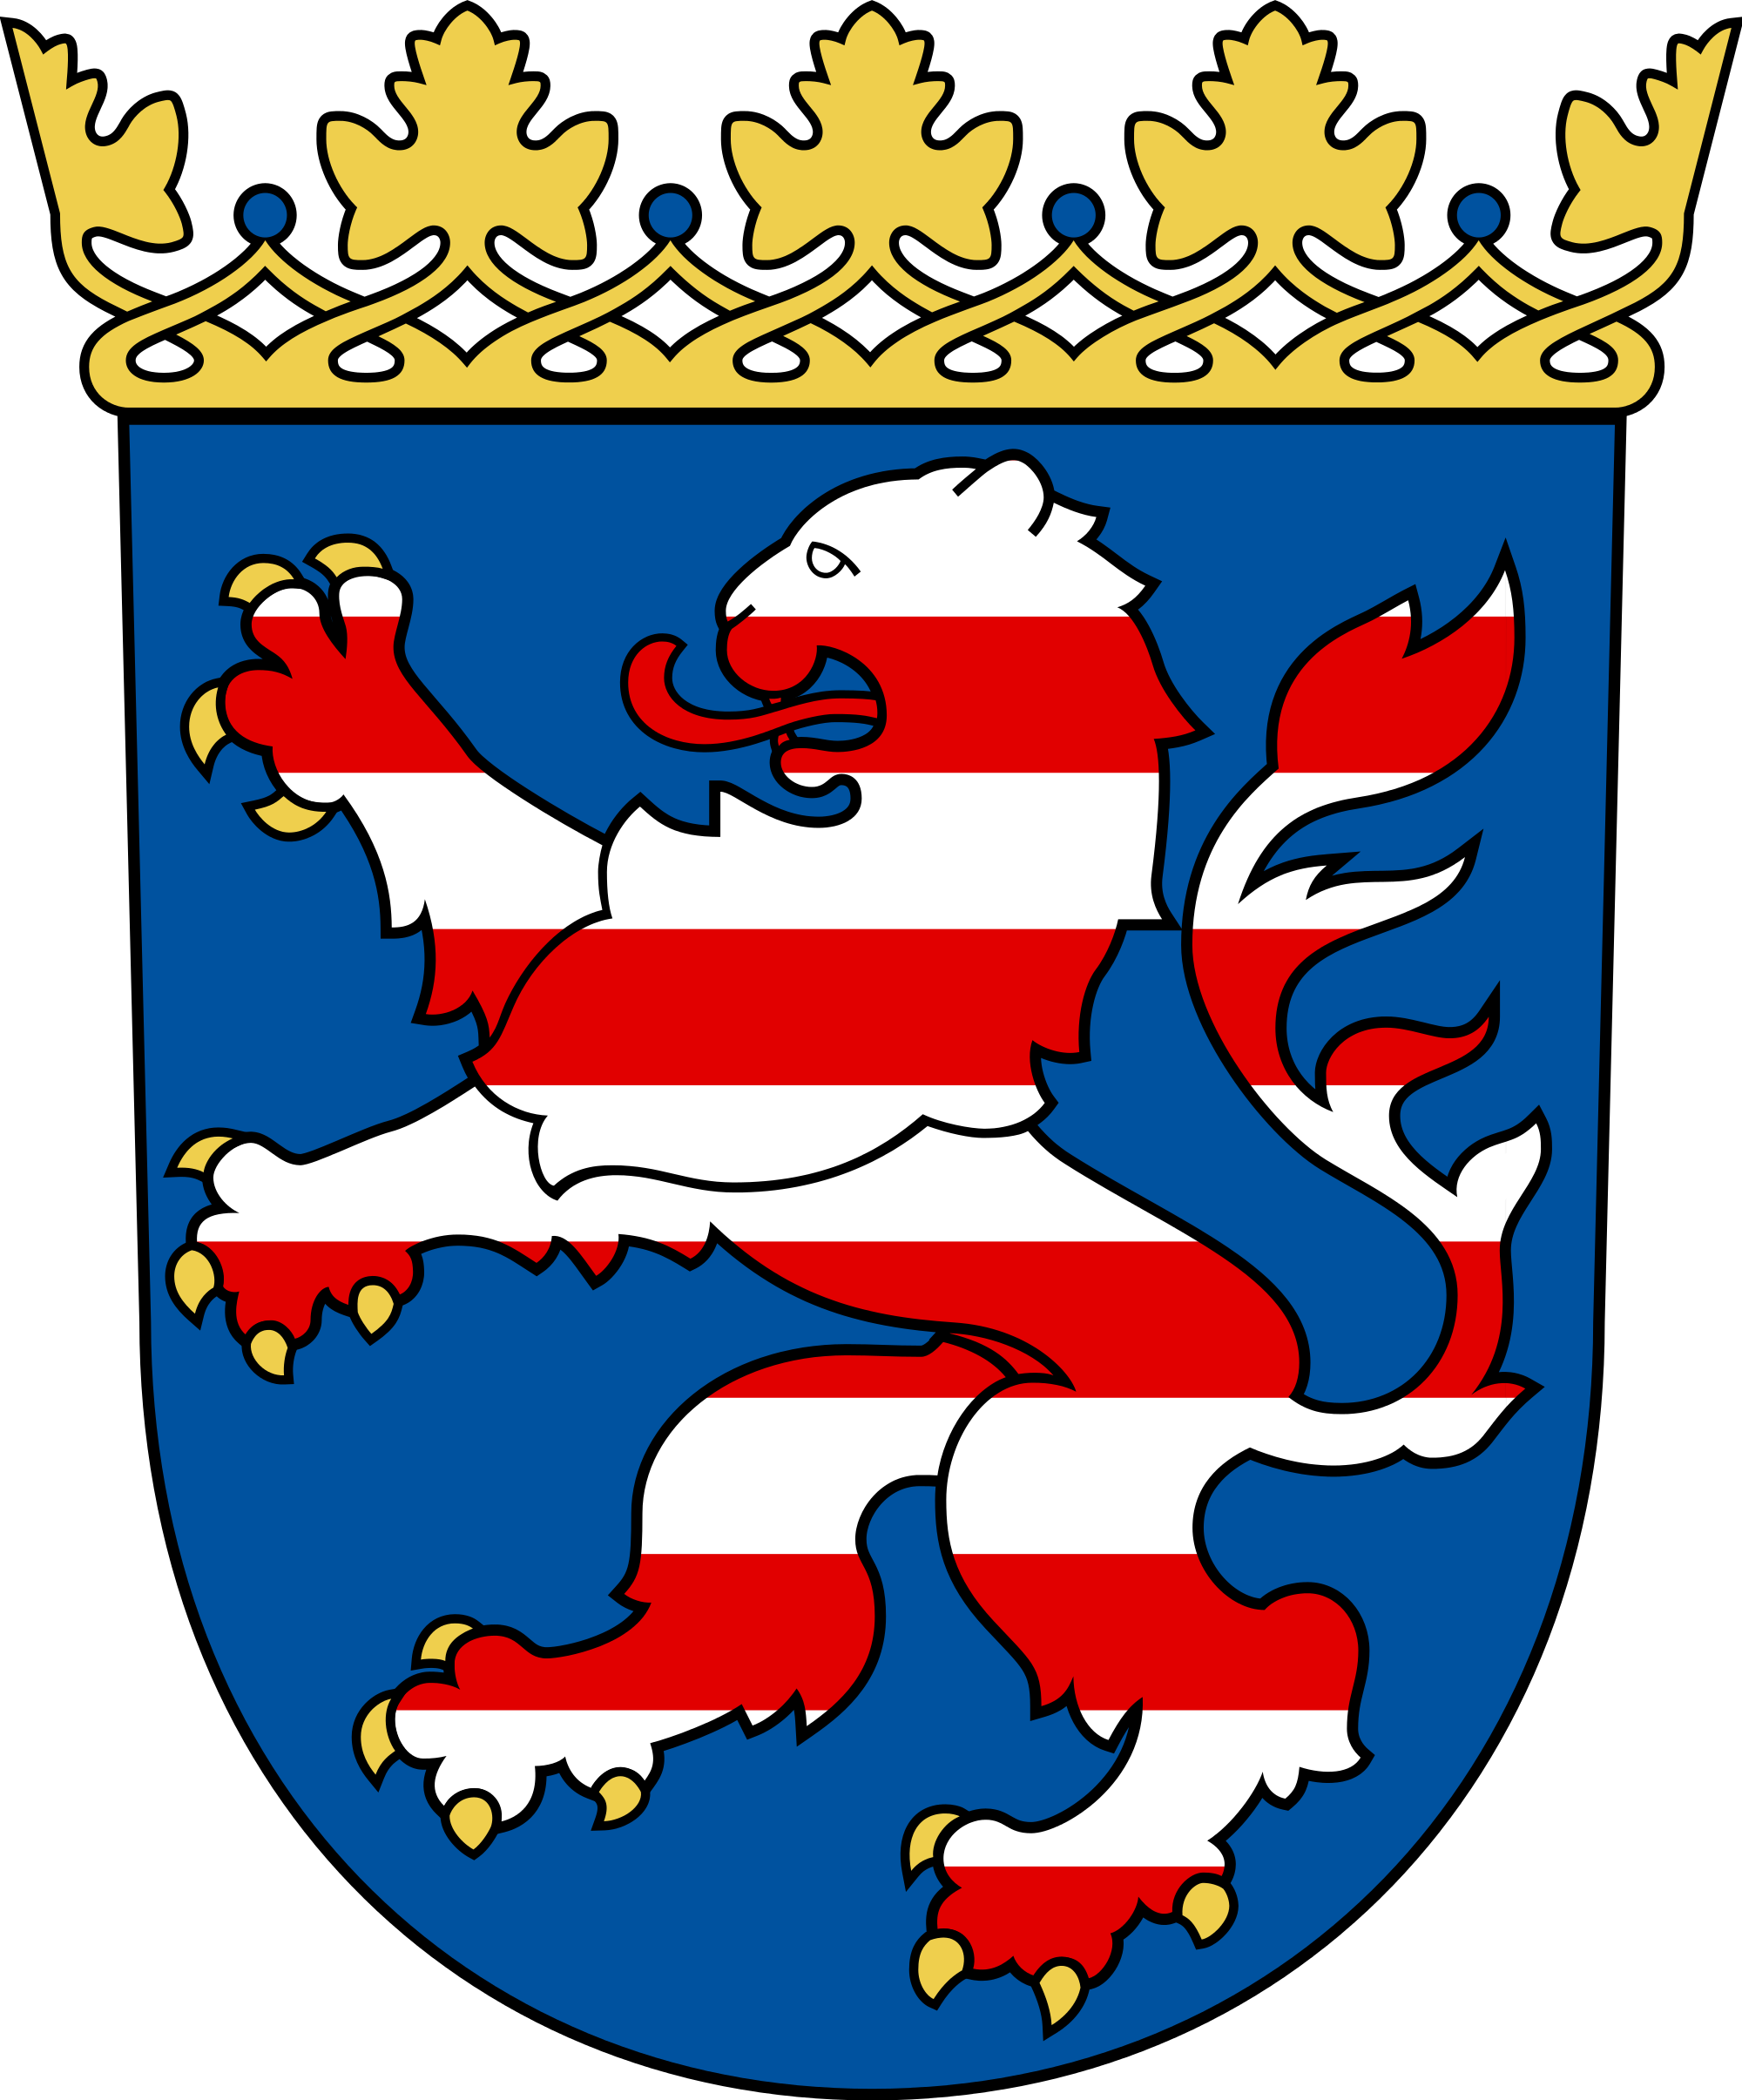 File:Coat of arms of Hesse.svg.